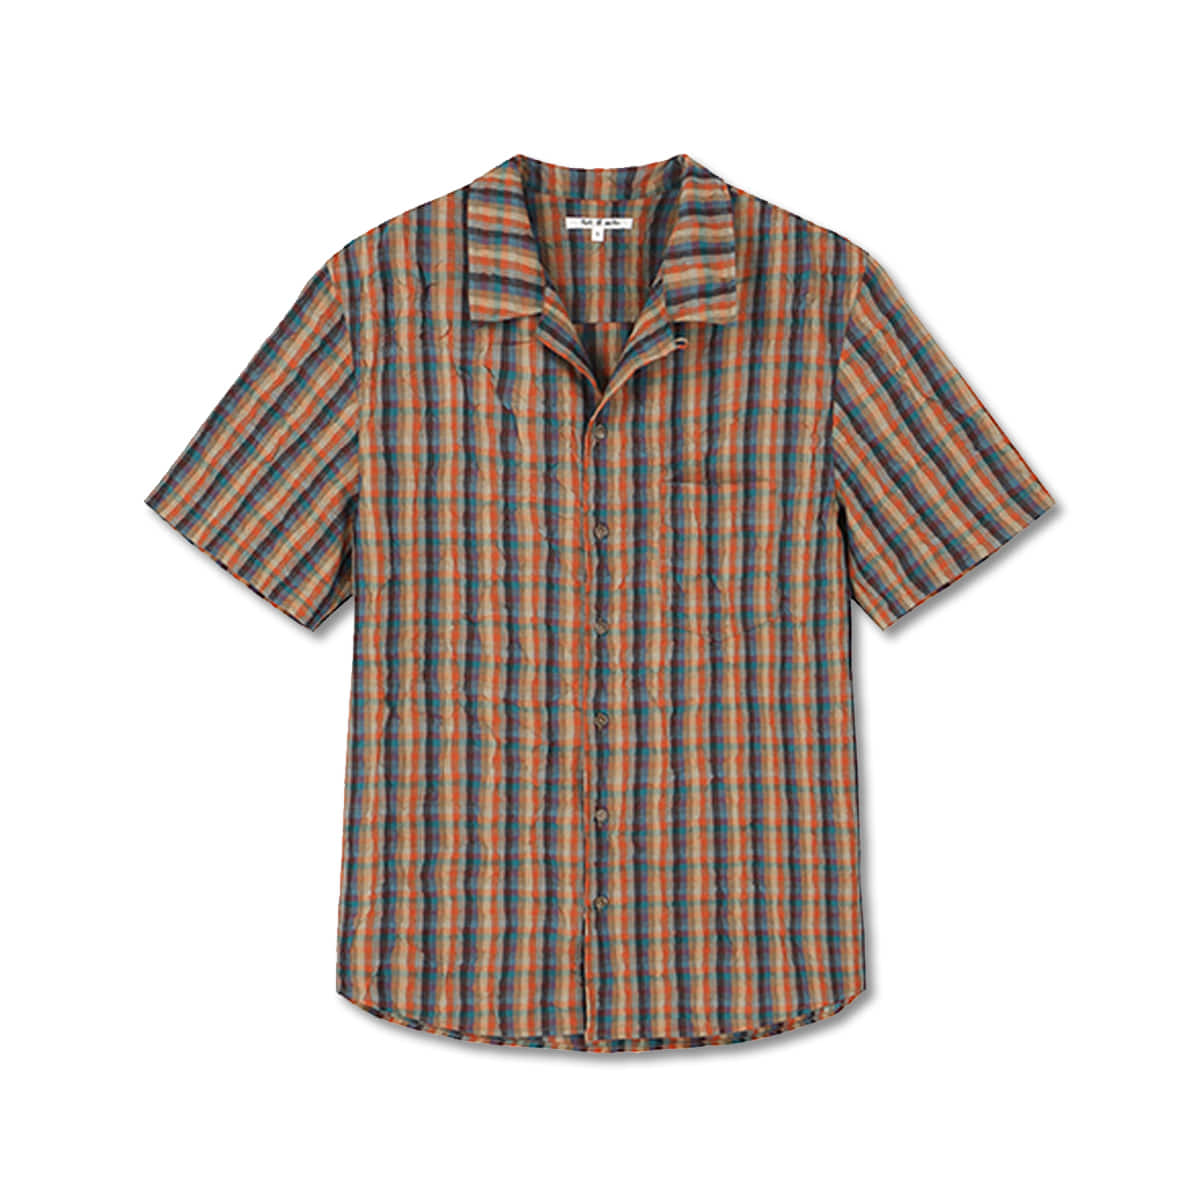 [ART IF ACTS] CLIP PLEATS HALF SHIRTS 'ORANGE'